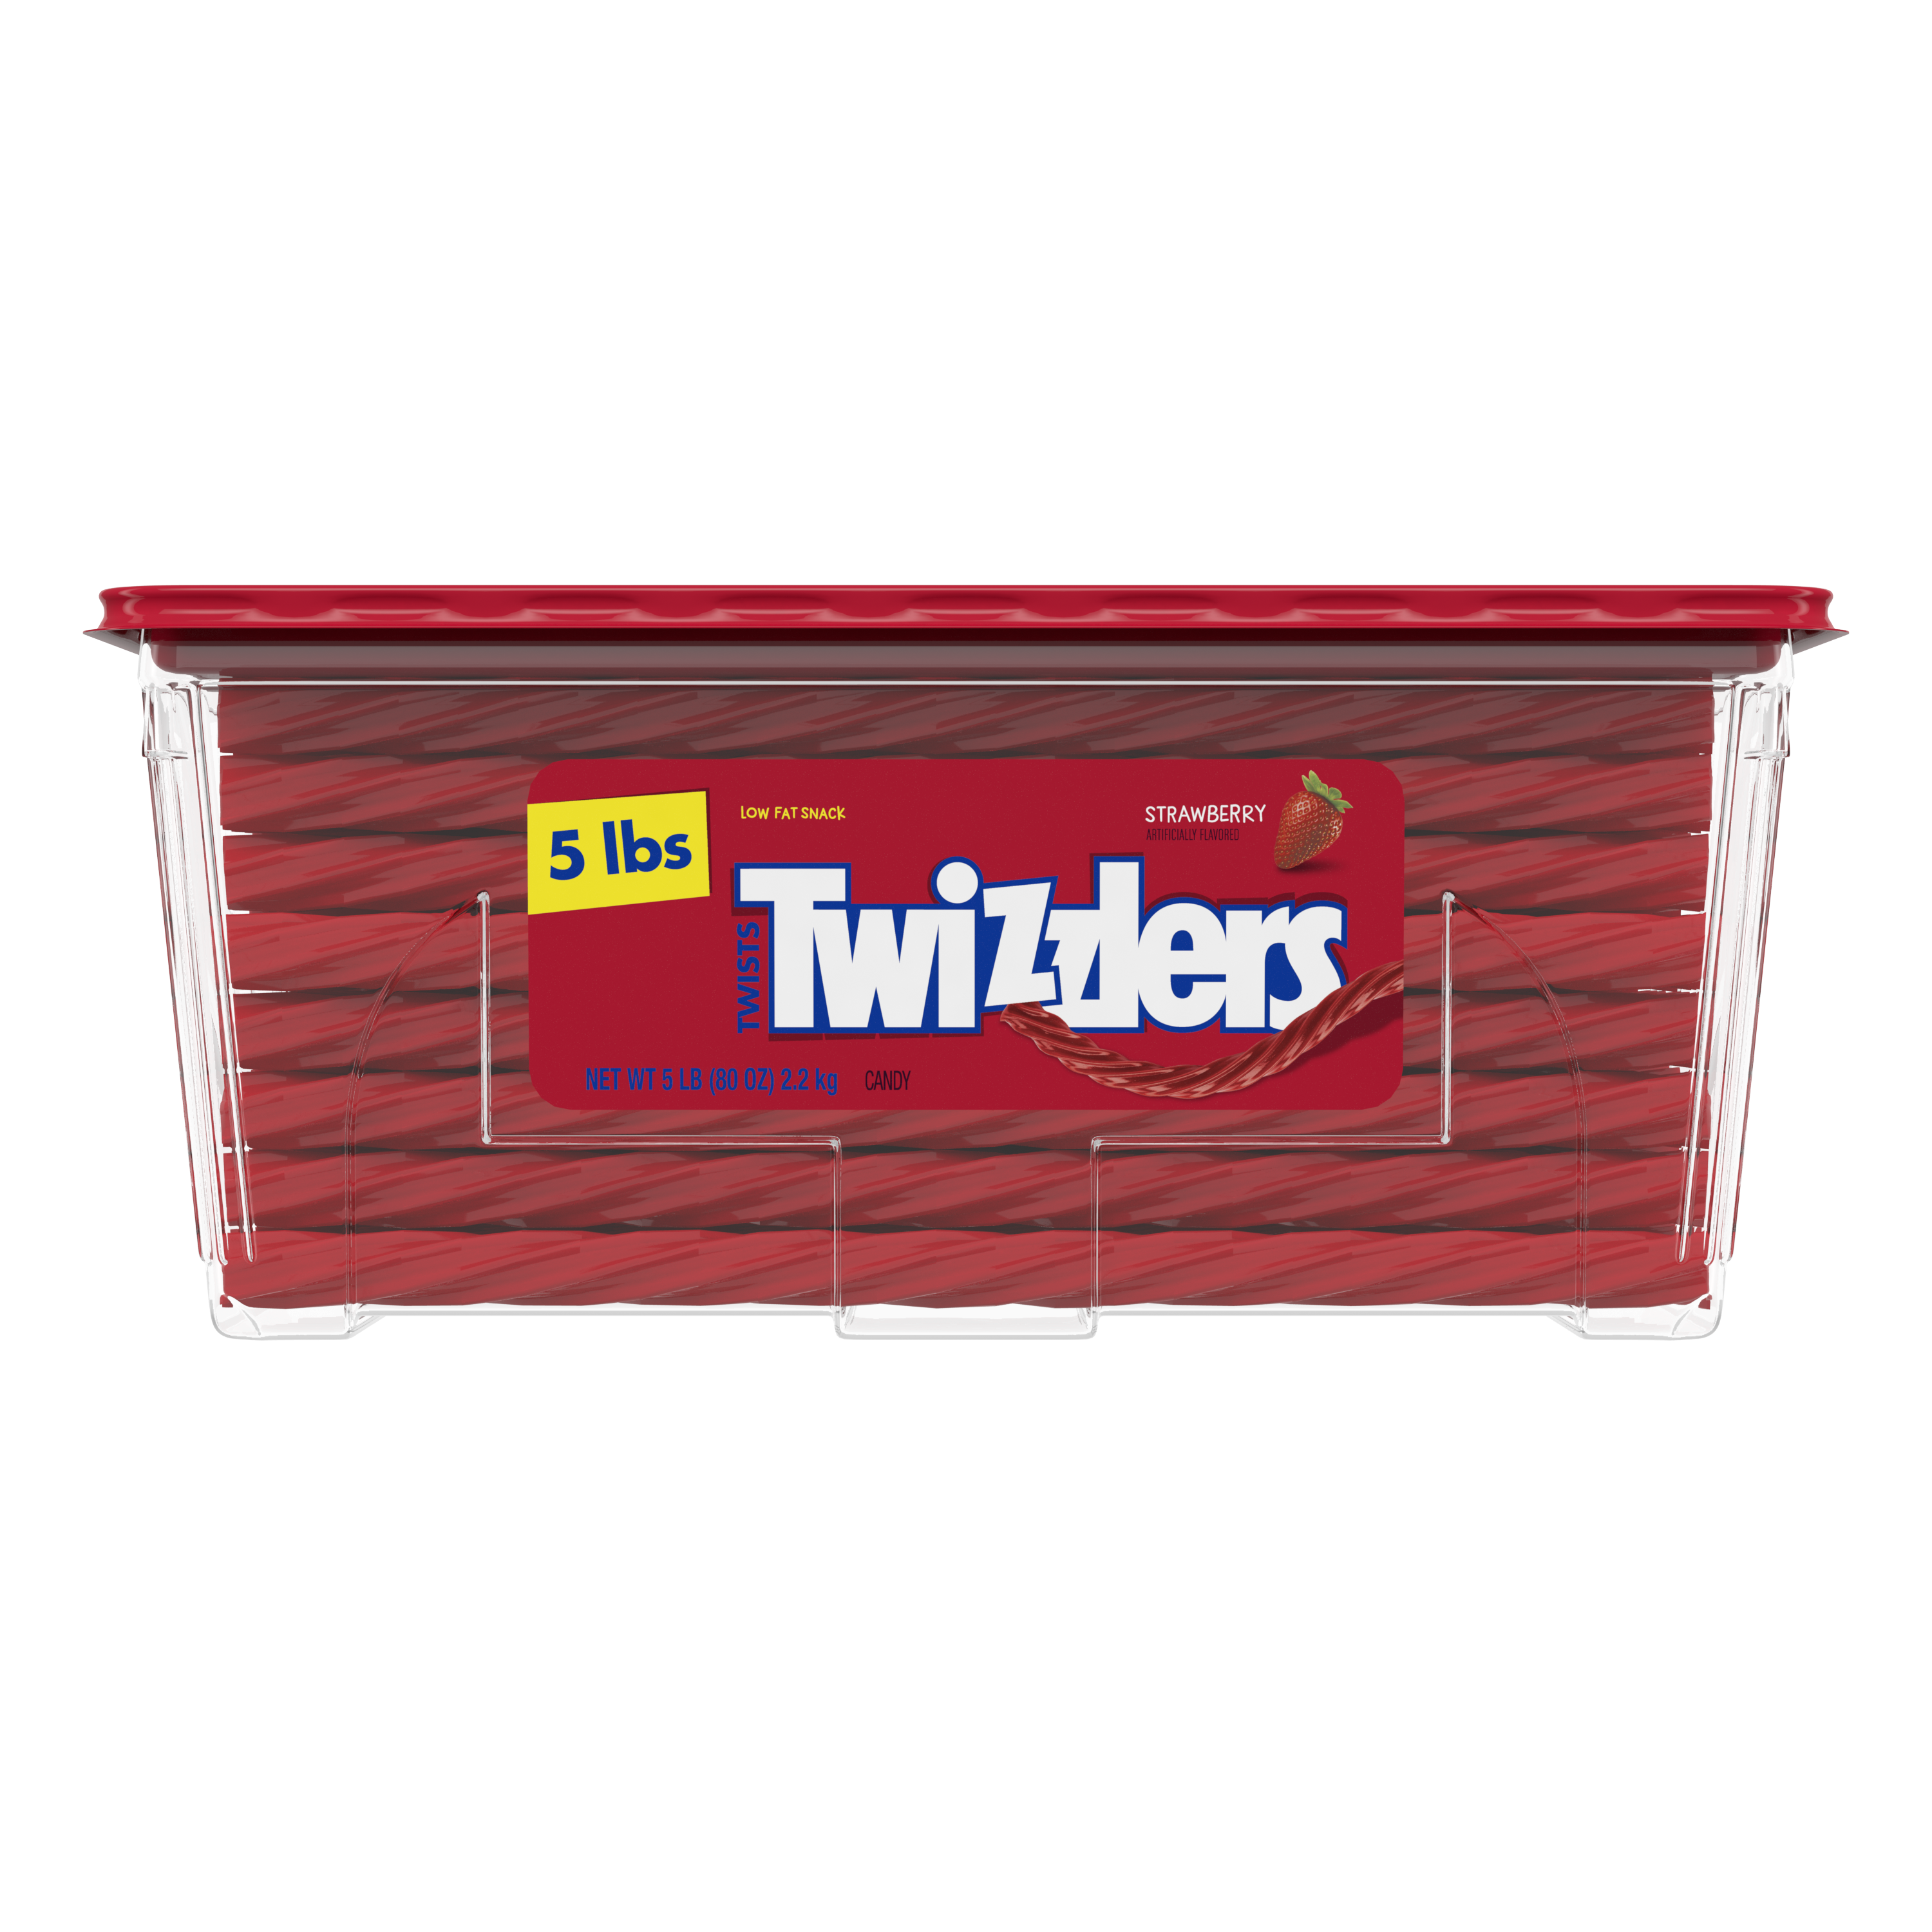 TWIZZLERS Twists Strawberry Flavored Candy, 80 oz tub - Front of Package